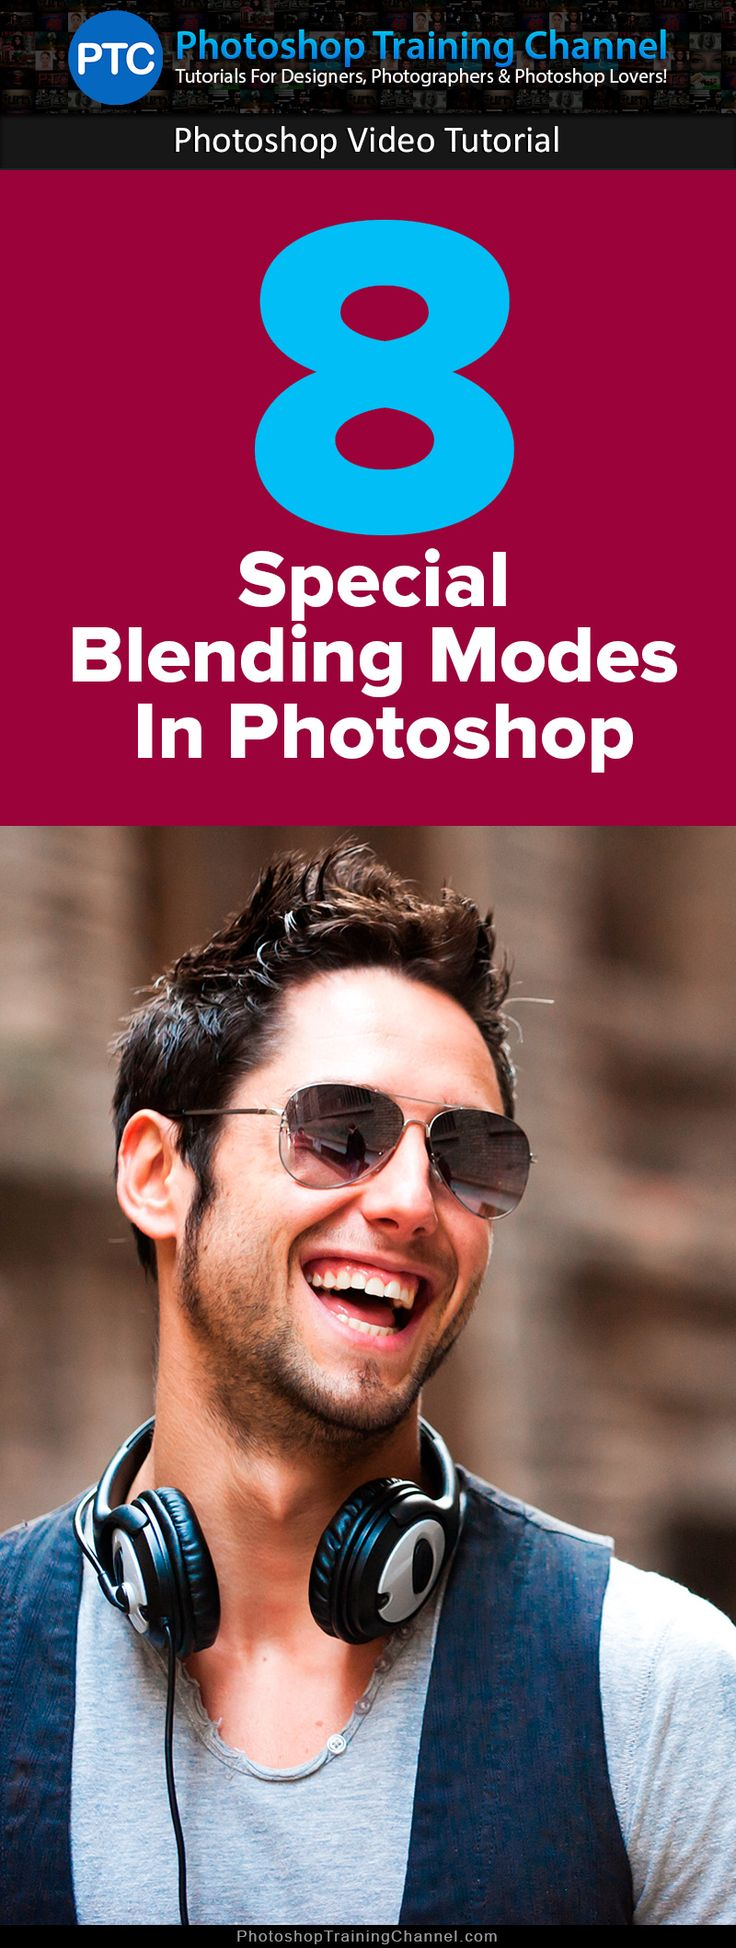 In this video, I'm going to show you how Photoshop's 8 special Blending Modes…